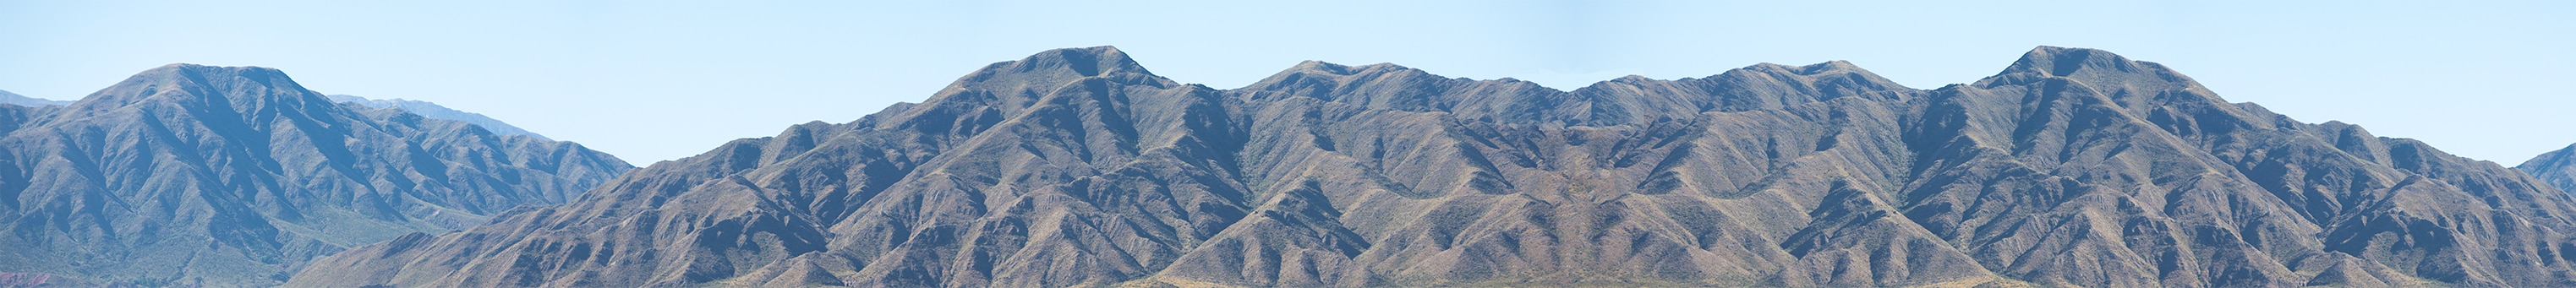 Header image with mountains